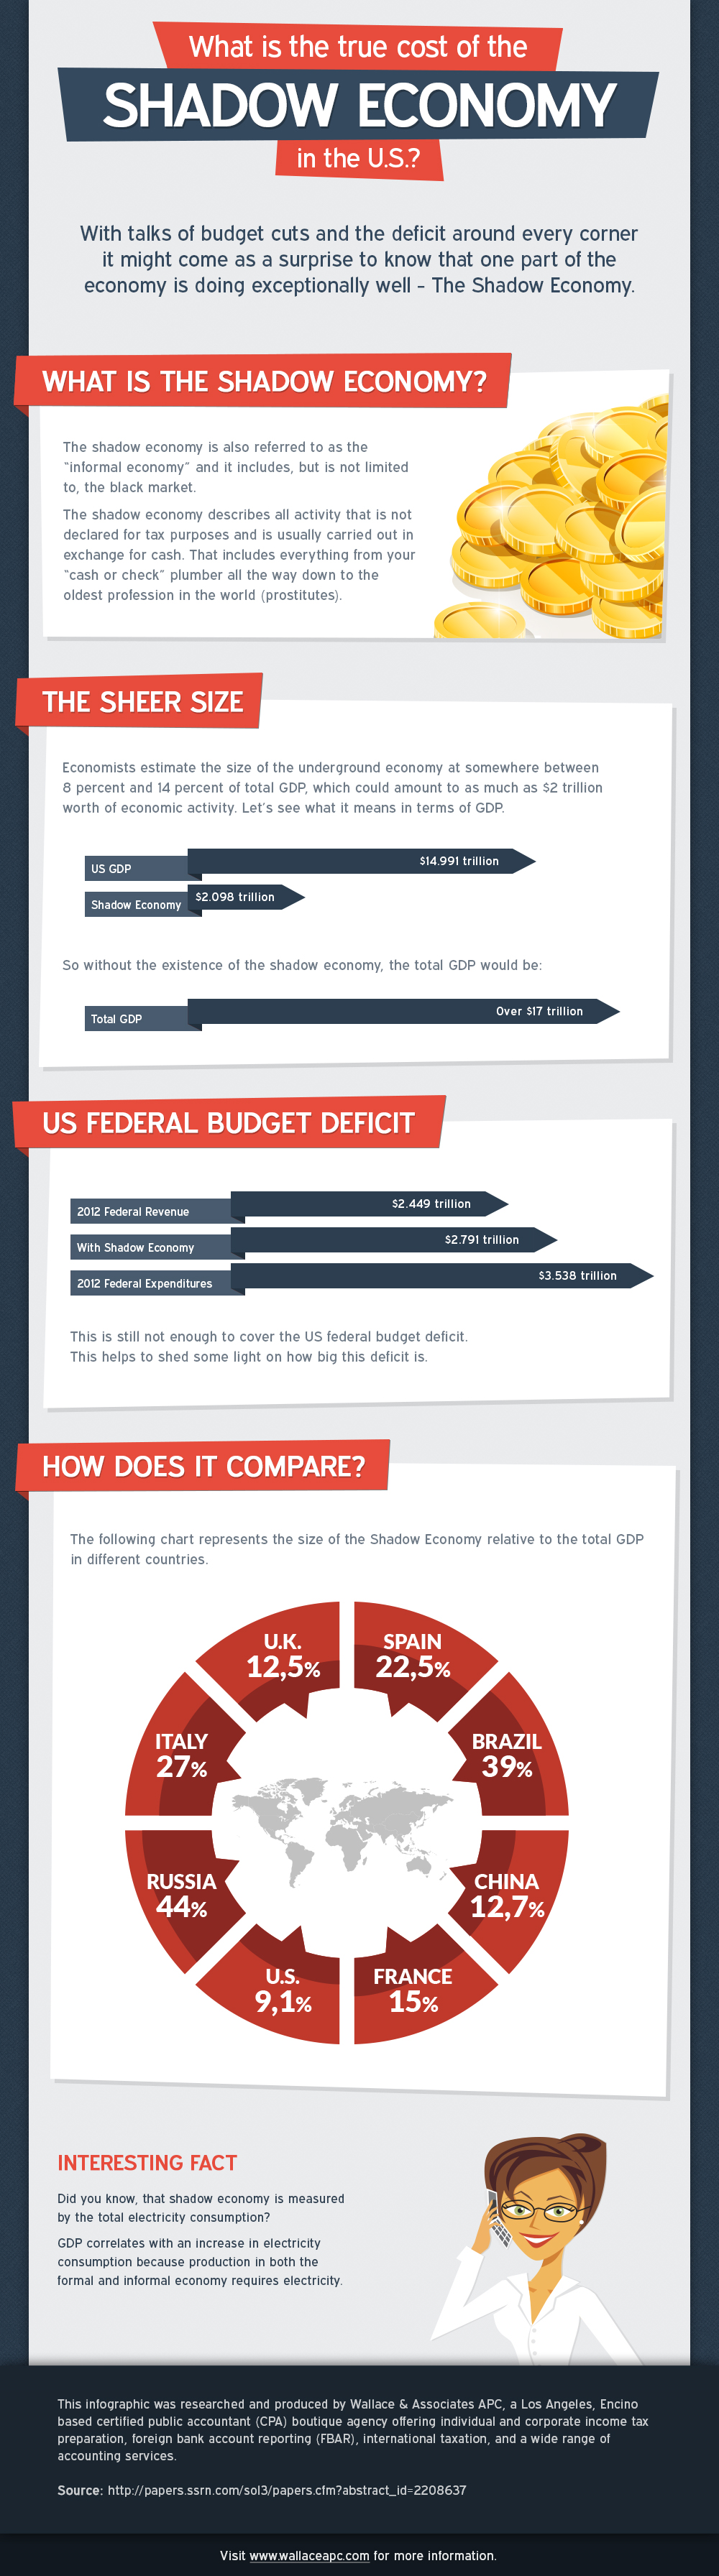 An infographic about the true cost of the shadow economy in the US and whether it would be enough to cover the US budget deficit(spoiler alert: it's not).